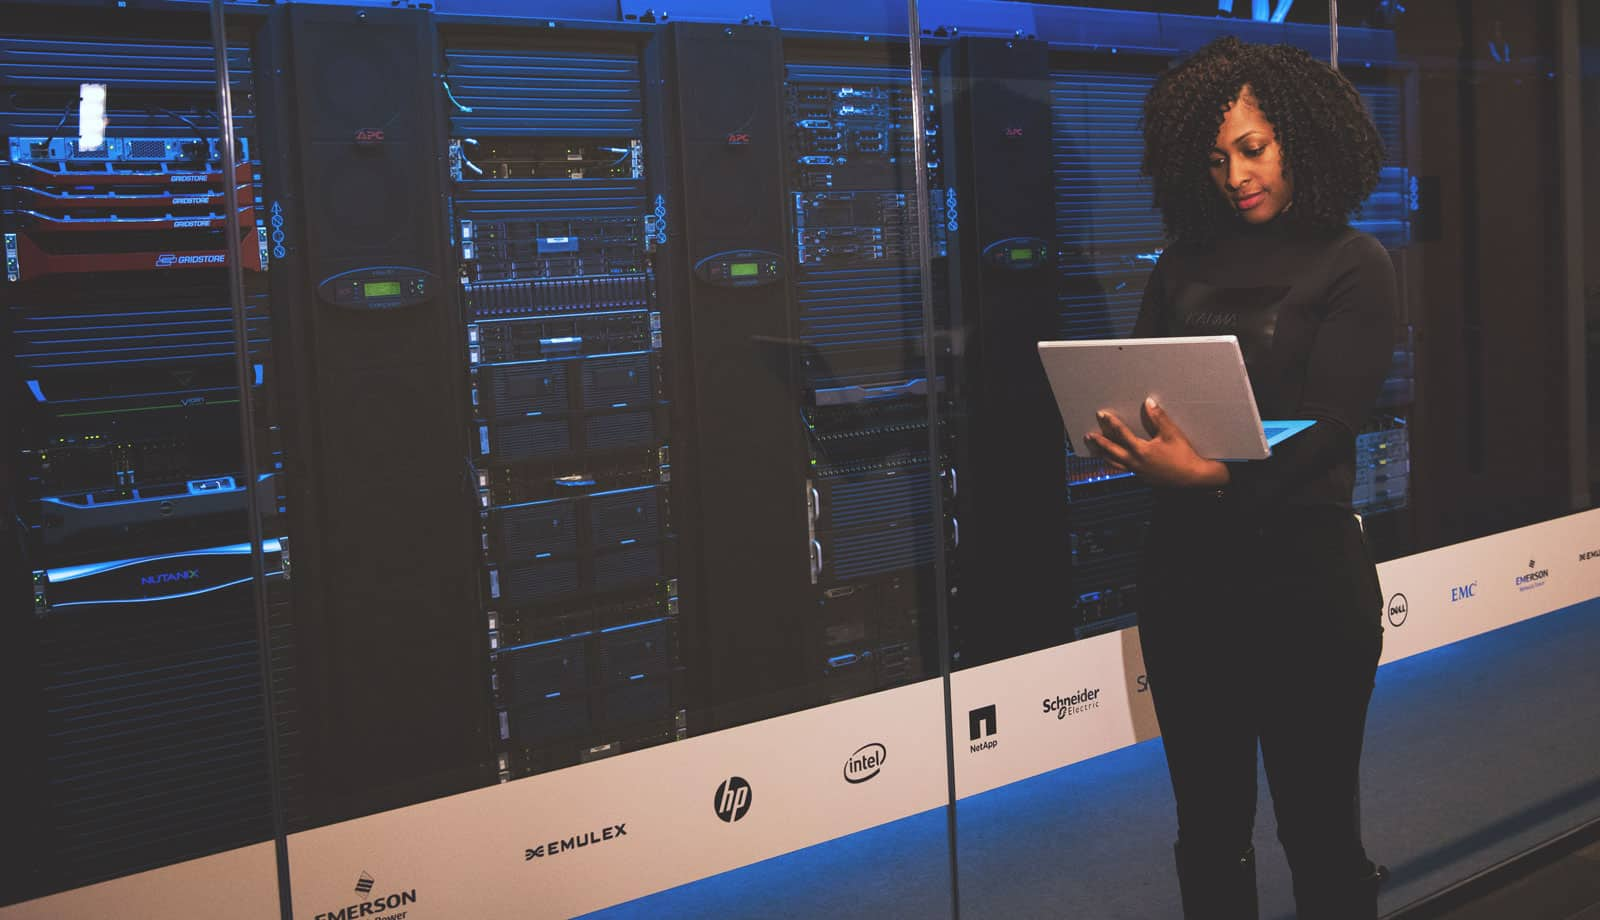 Impressive facts about data centers you didn't know